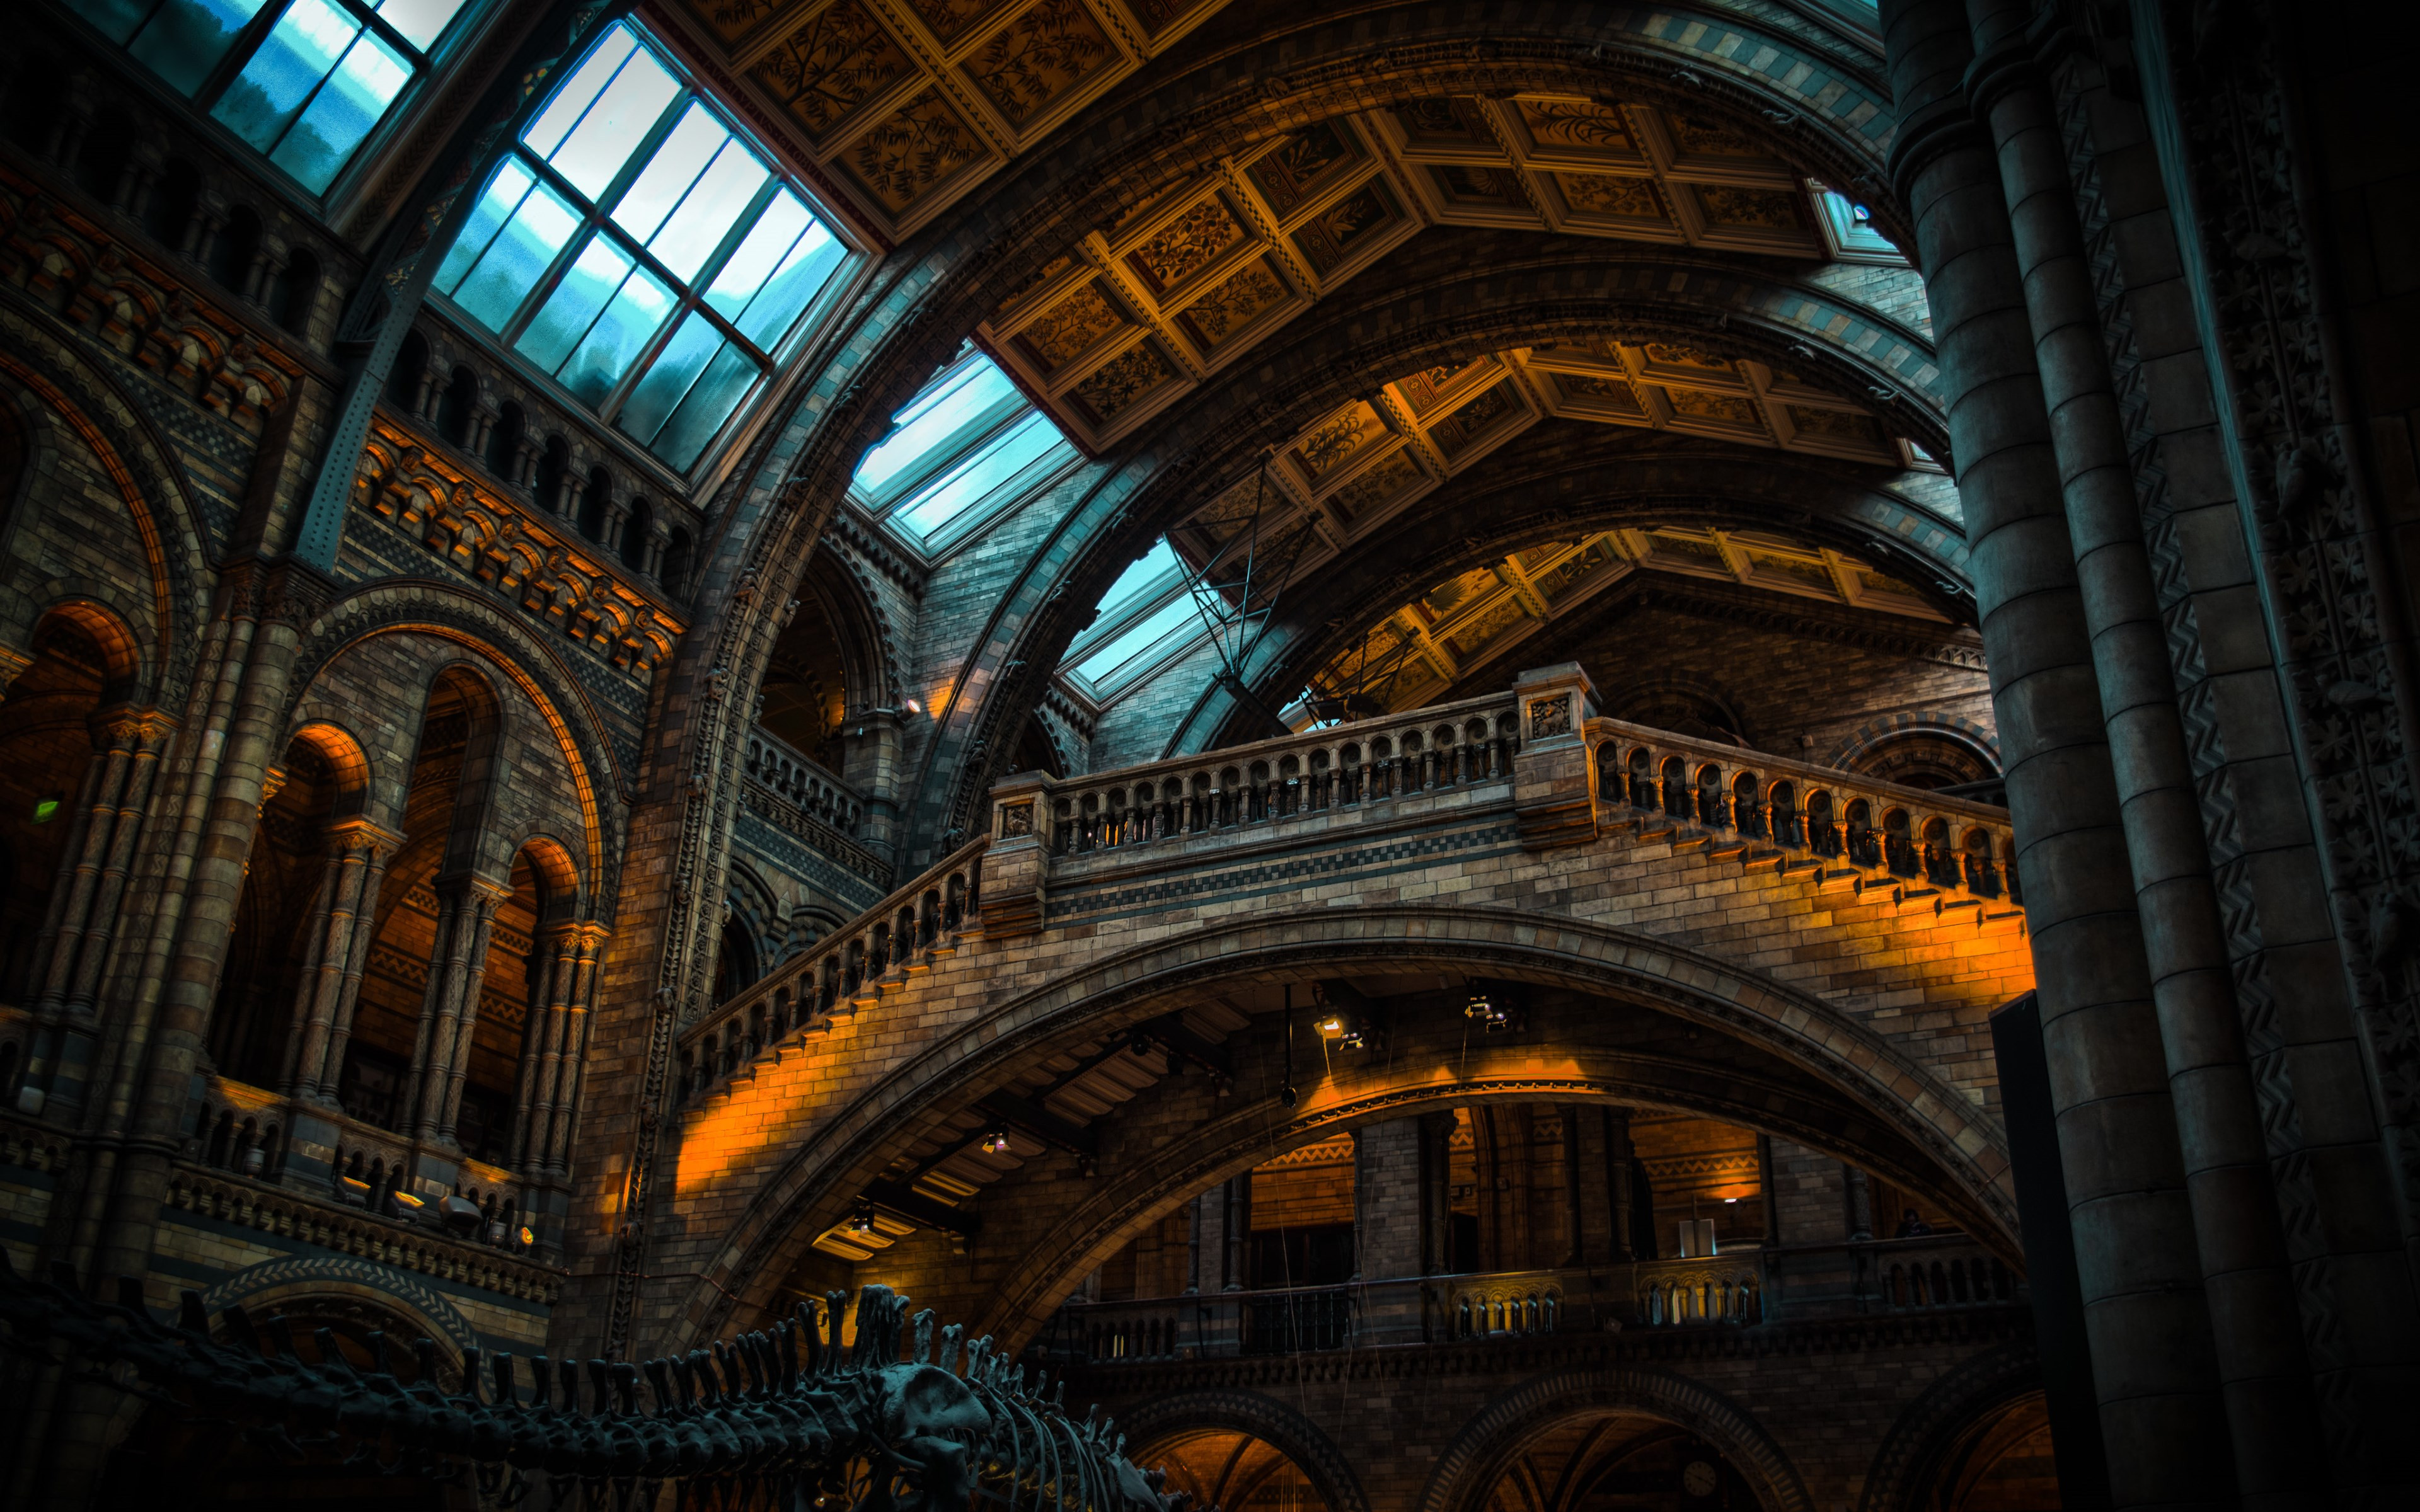 Inside of Natural History Museum from London | 3840x2400 wallpaper